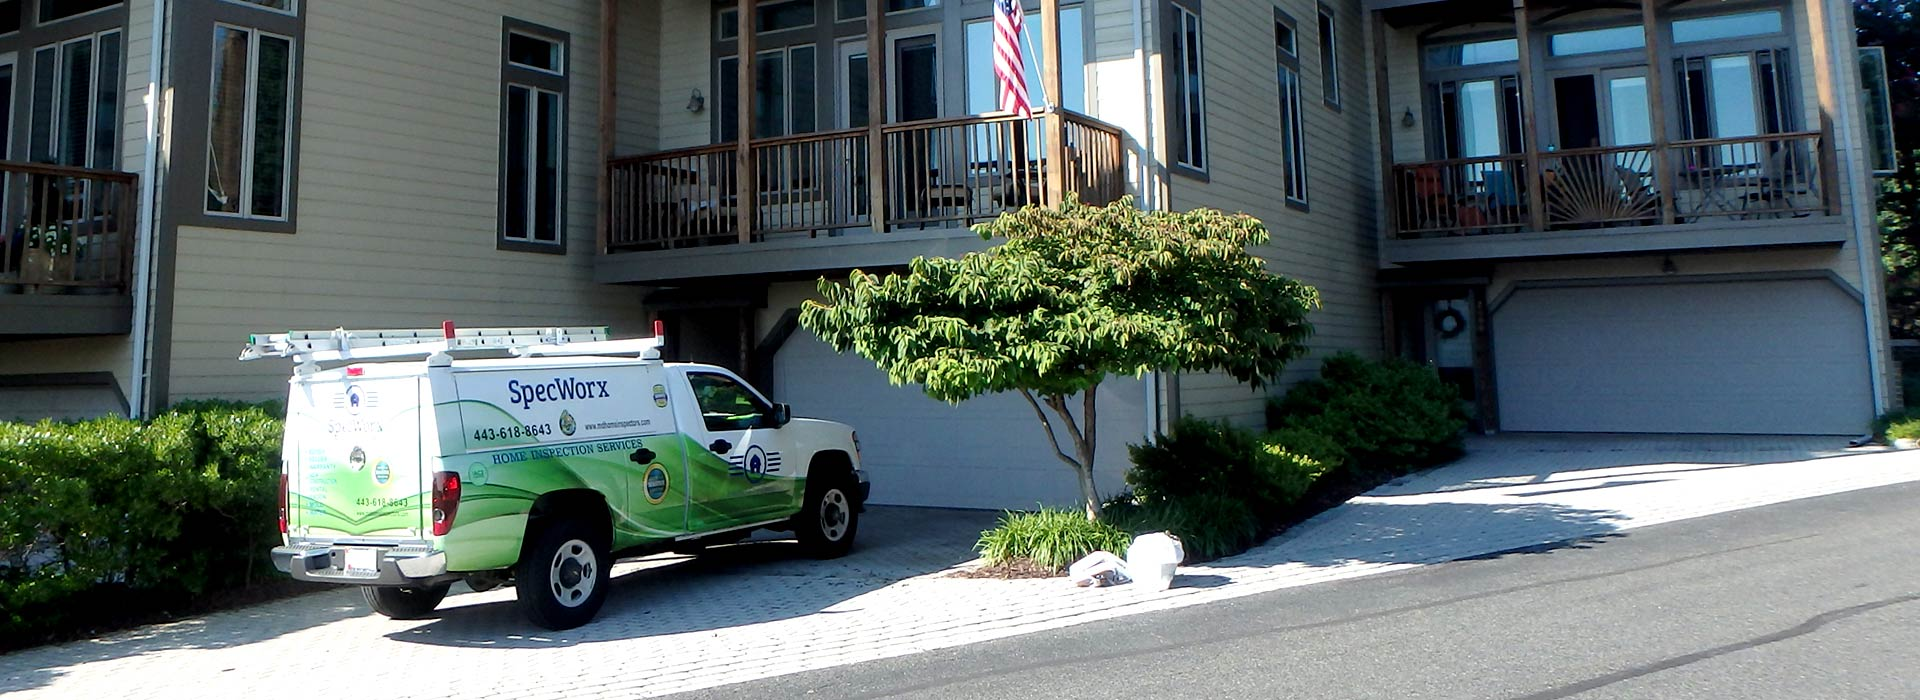 Maryland Home Inspection SPECWORX Truck